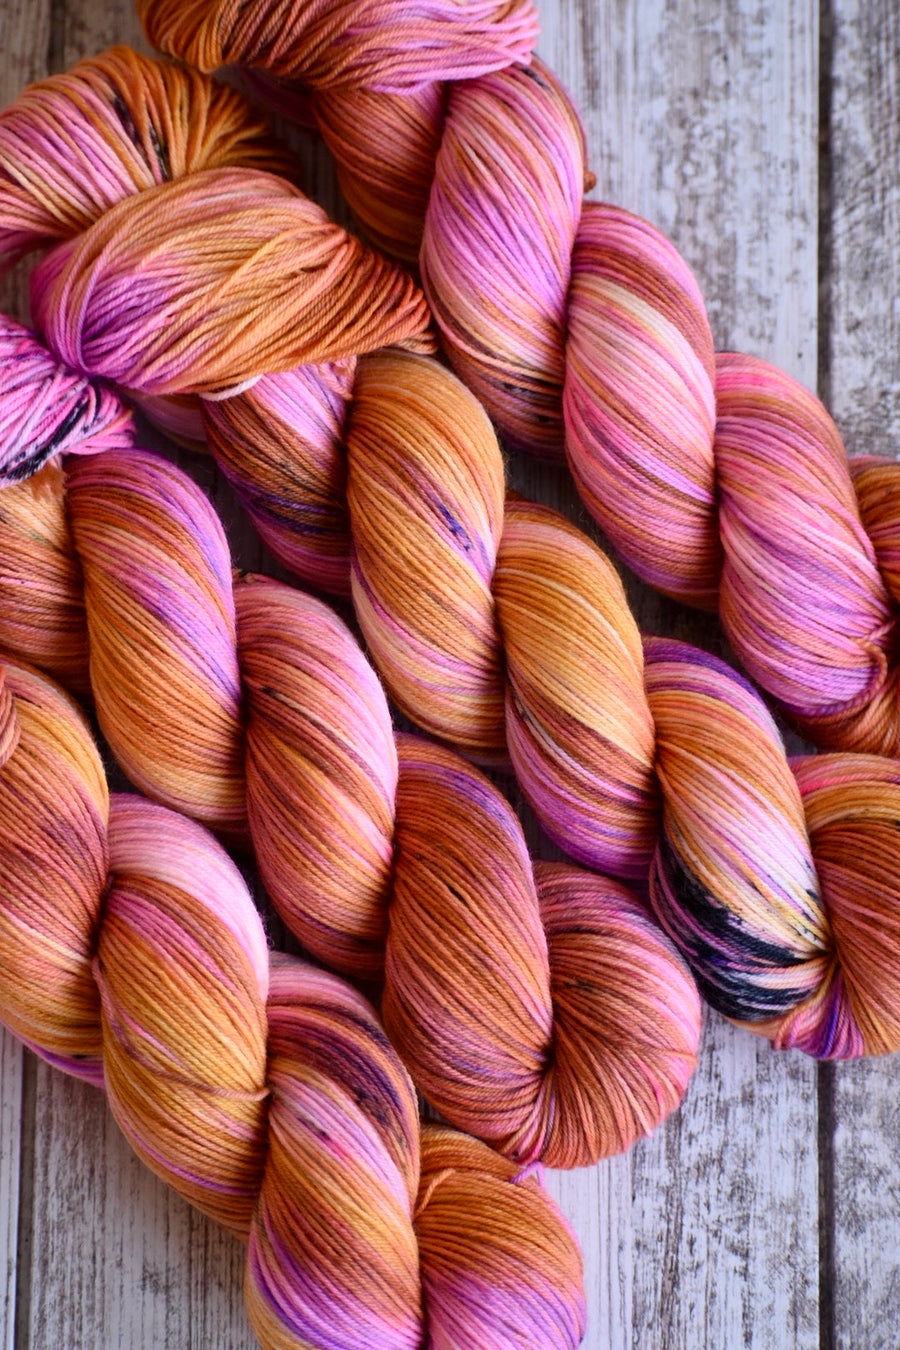 Fire Heart- Merino/Nylon 4 Ply Sock